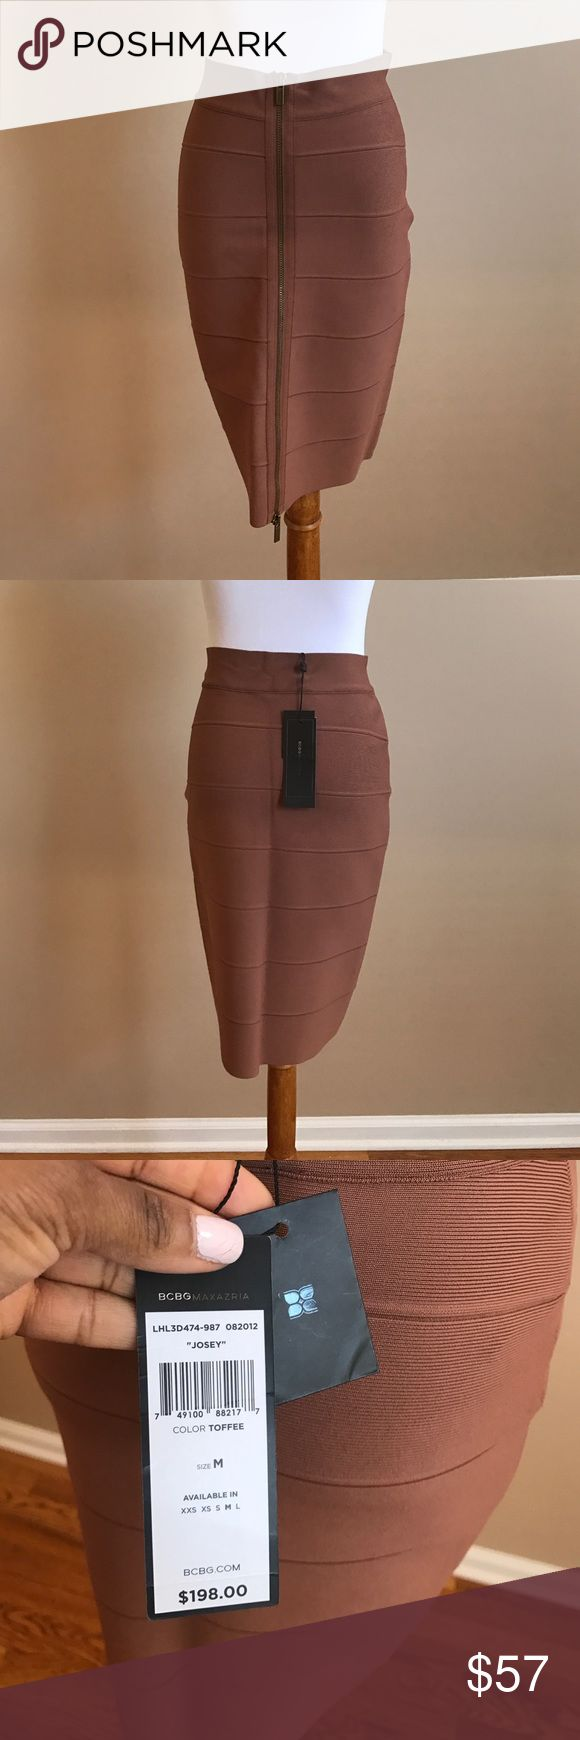 BCBG Josey bandeau skirt BCBG Josey bandeau skirt. Bronze zipper in the front. Great for any season and nights out! Featuring a high-rise waist, a stretch waistband and bandage-style construction. Color: toffee. Never worn with tags still attached. Sold out on most other sites. BCBG Skirts Mini